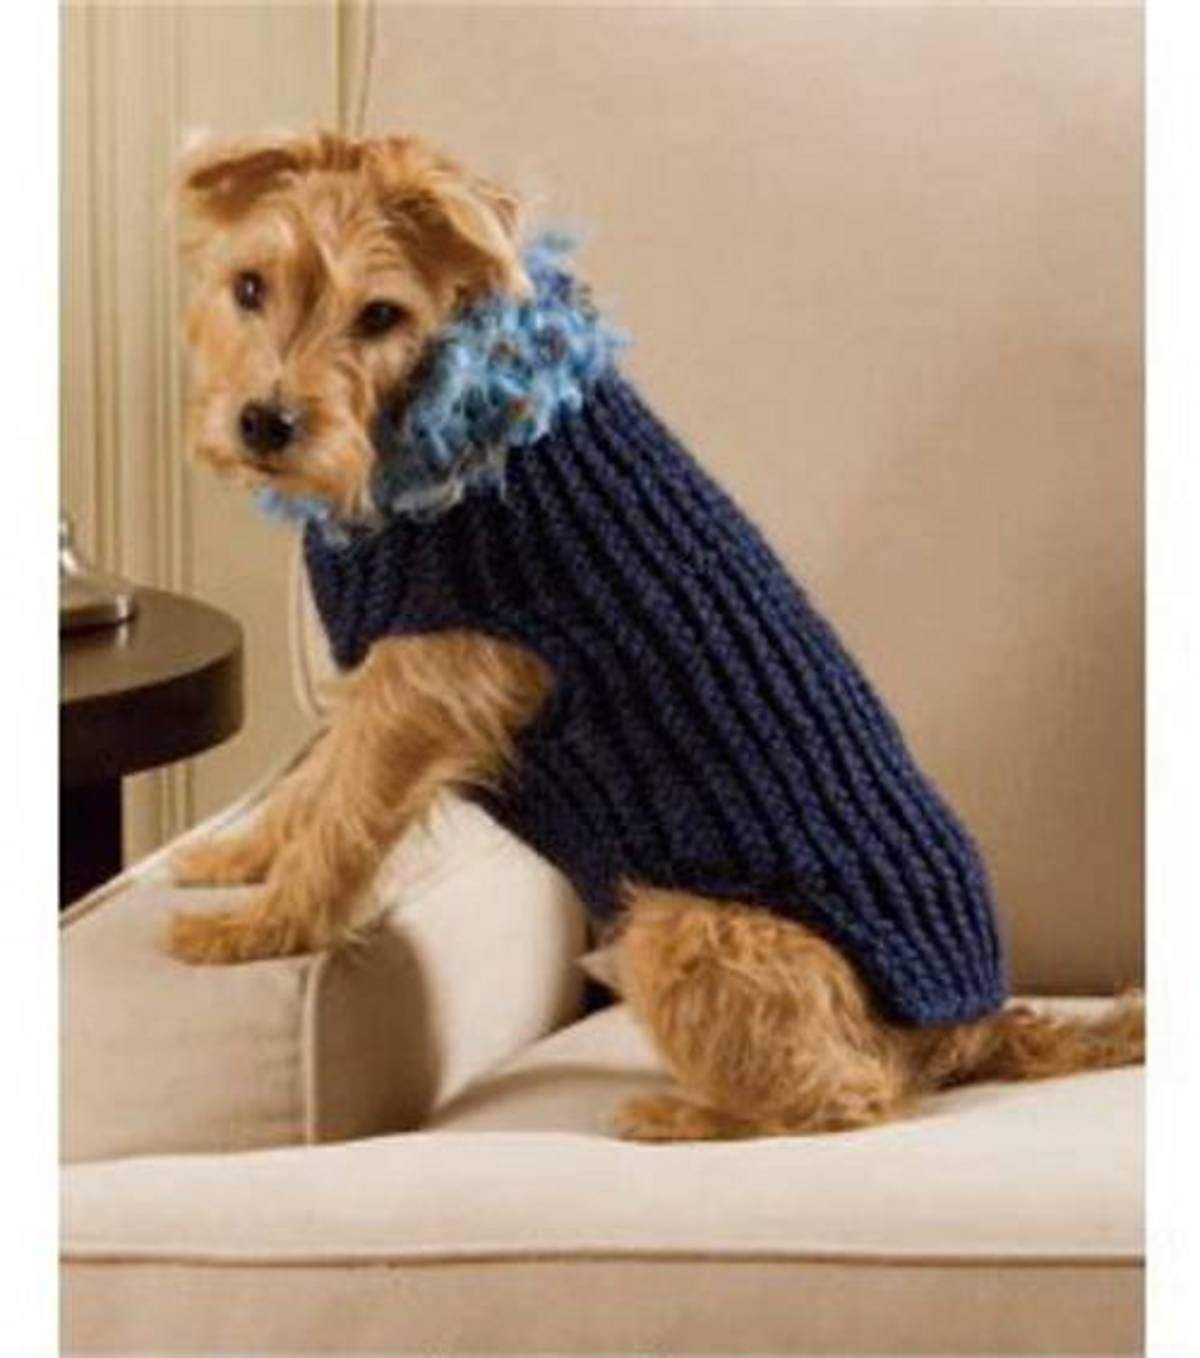 Easy-To-Loom Dog Sweater | Loom patterns | Pinterest | Hunde